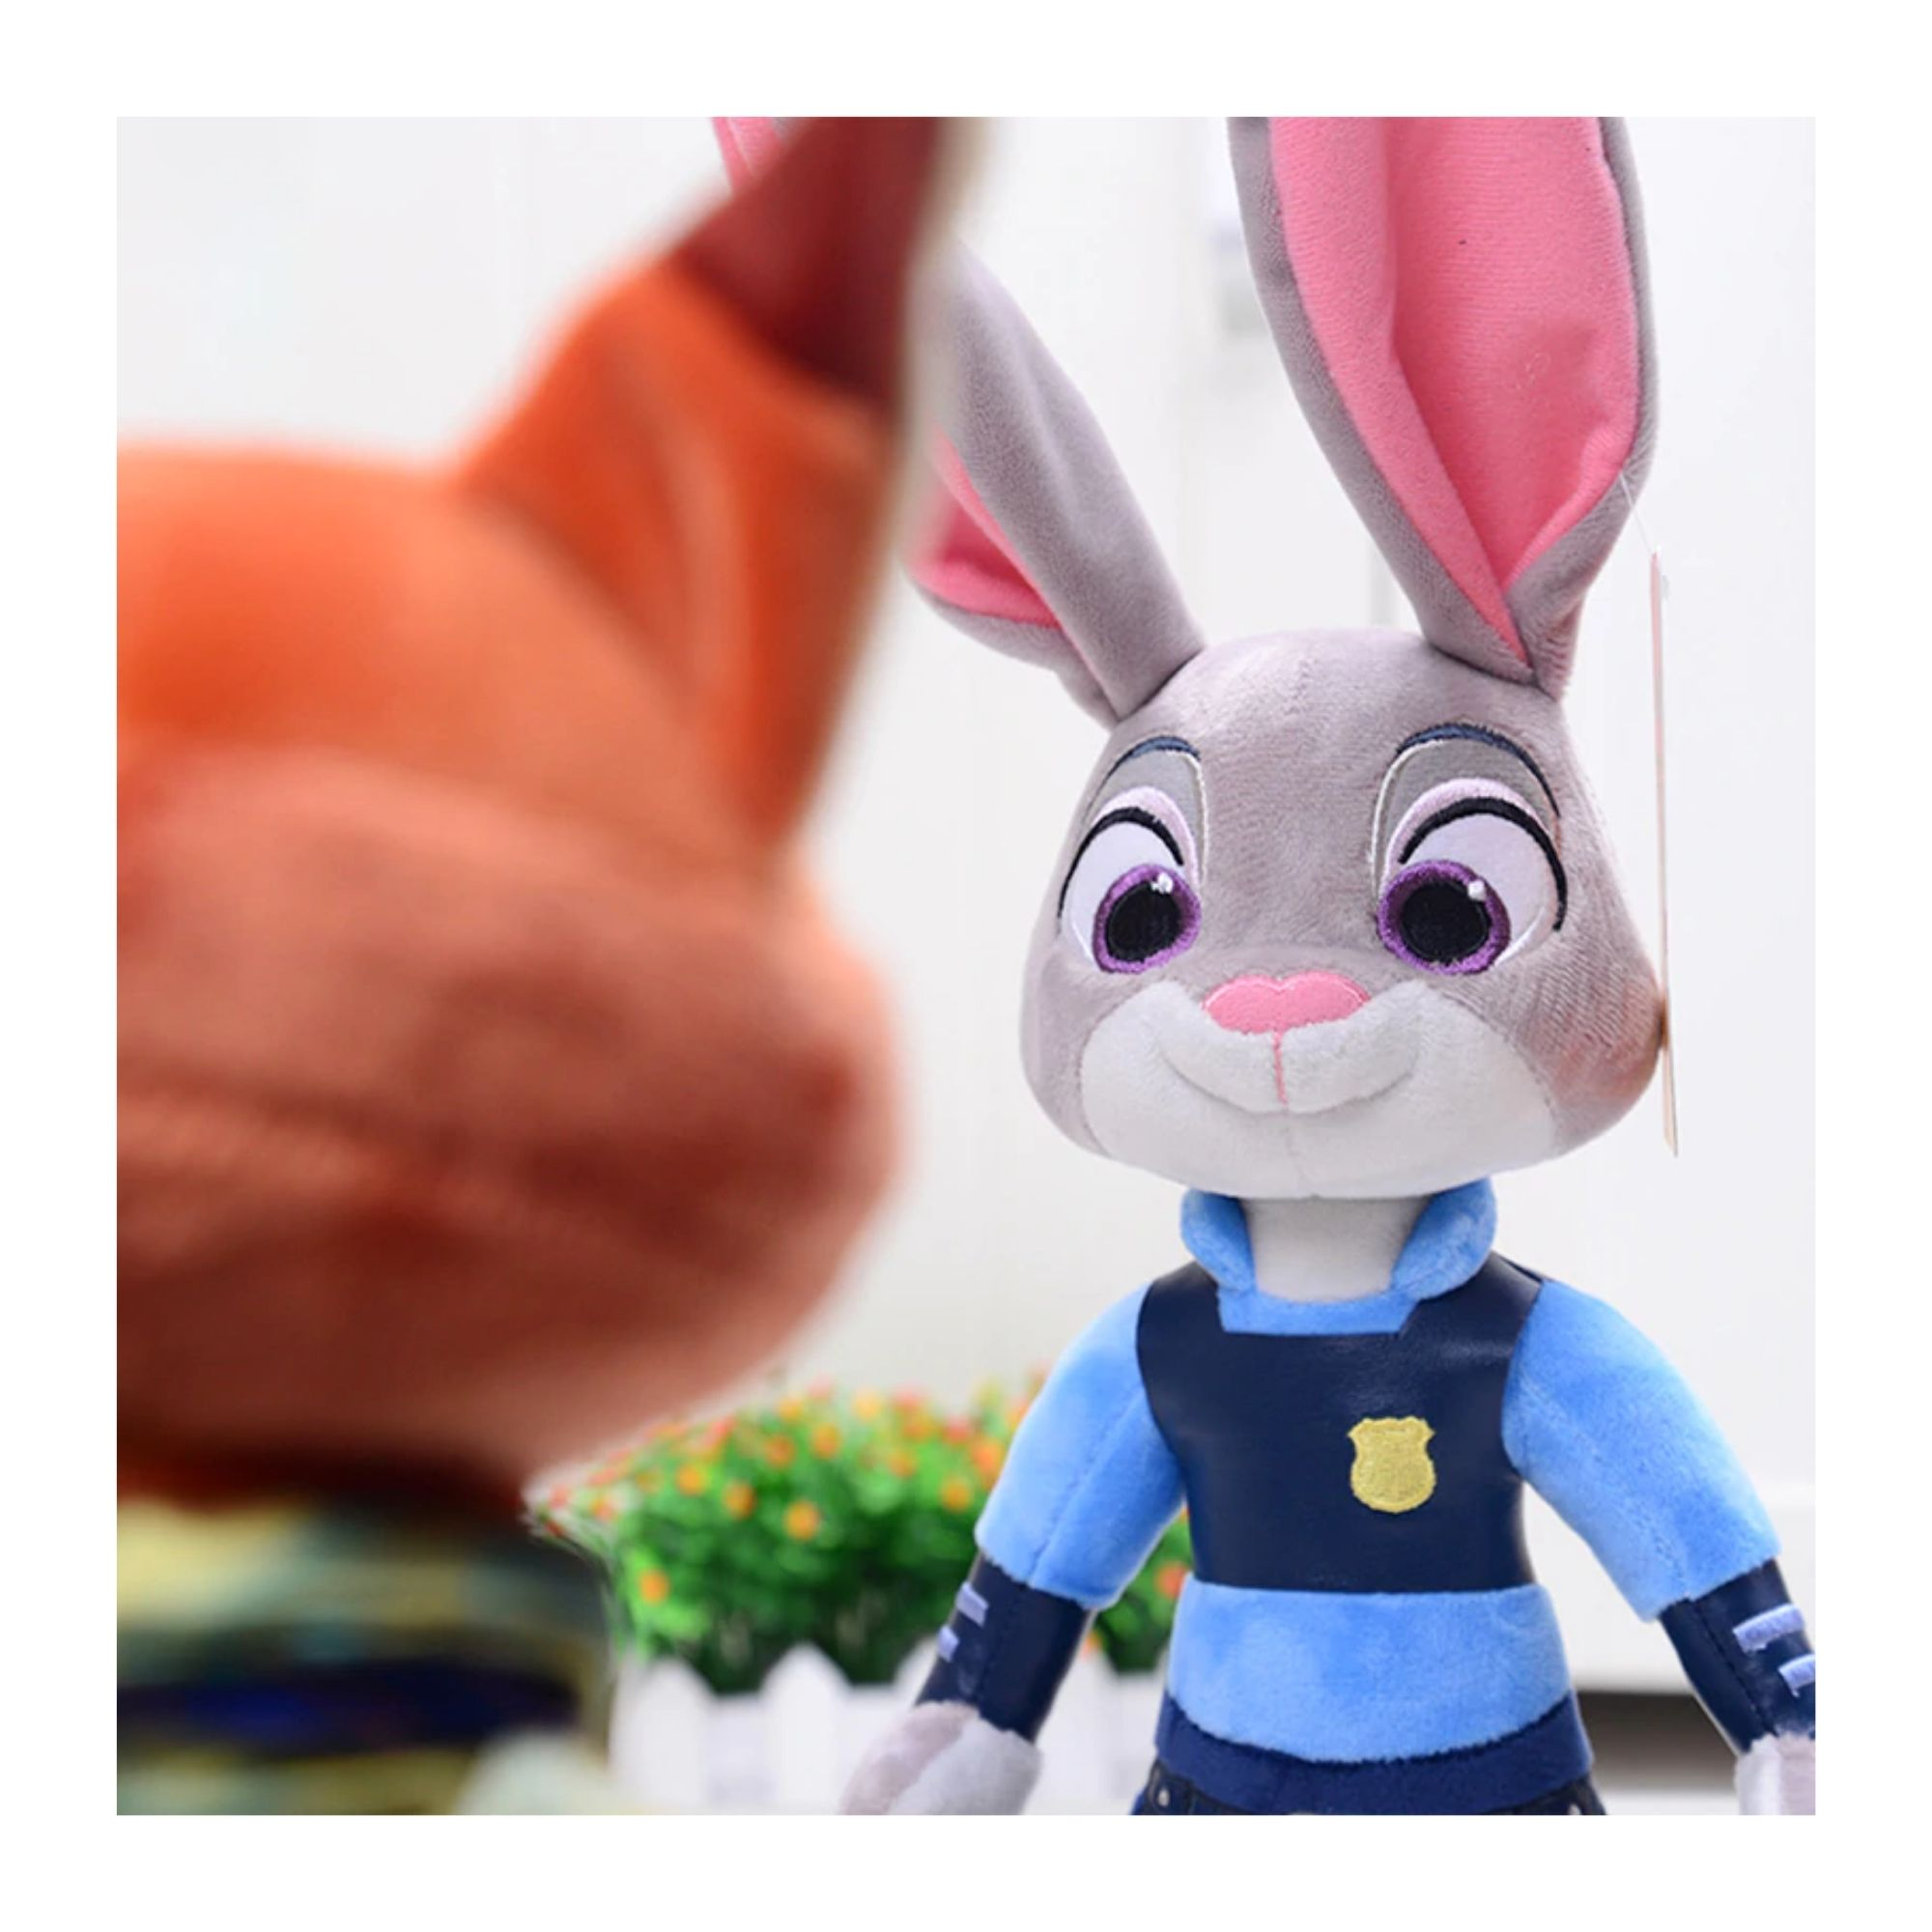 Zootopia Pelucia Judy Hopps - 40 cm  - Game Land Brinquedos